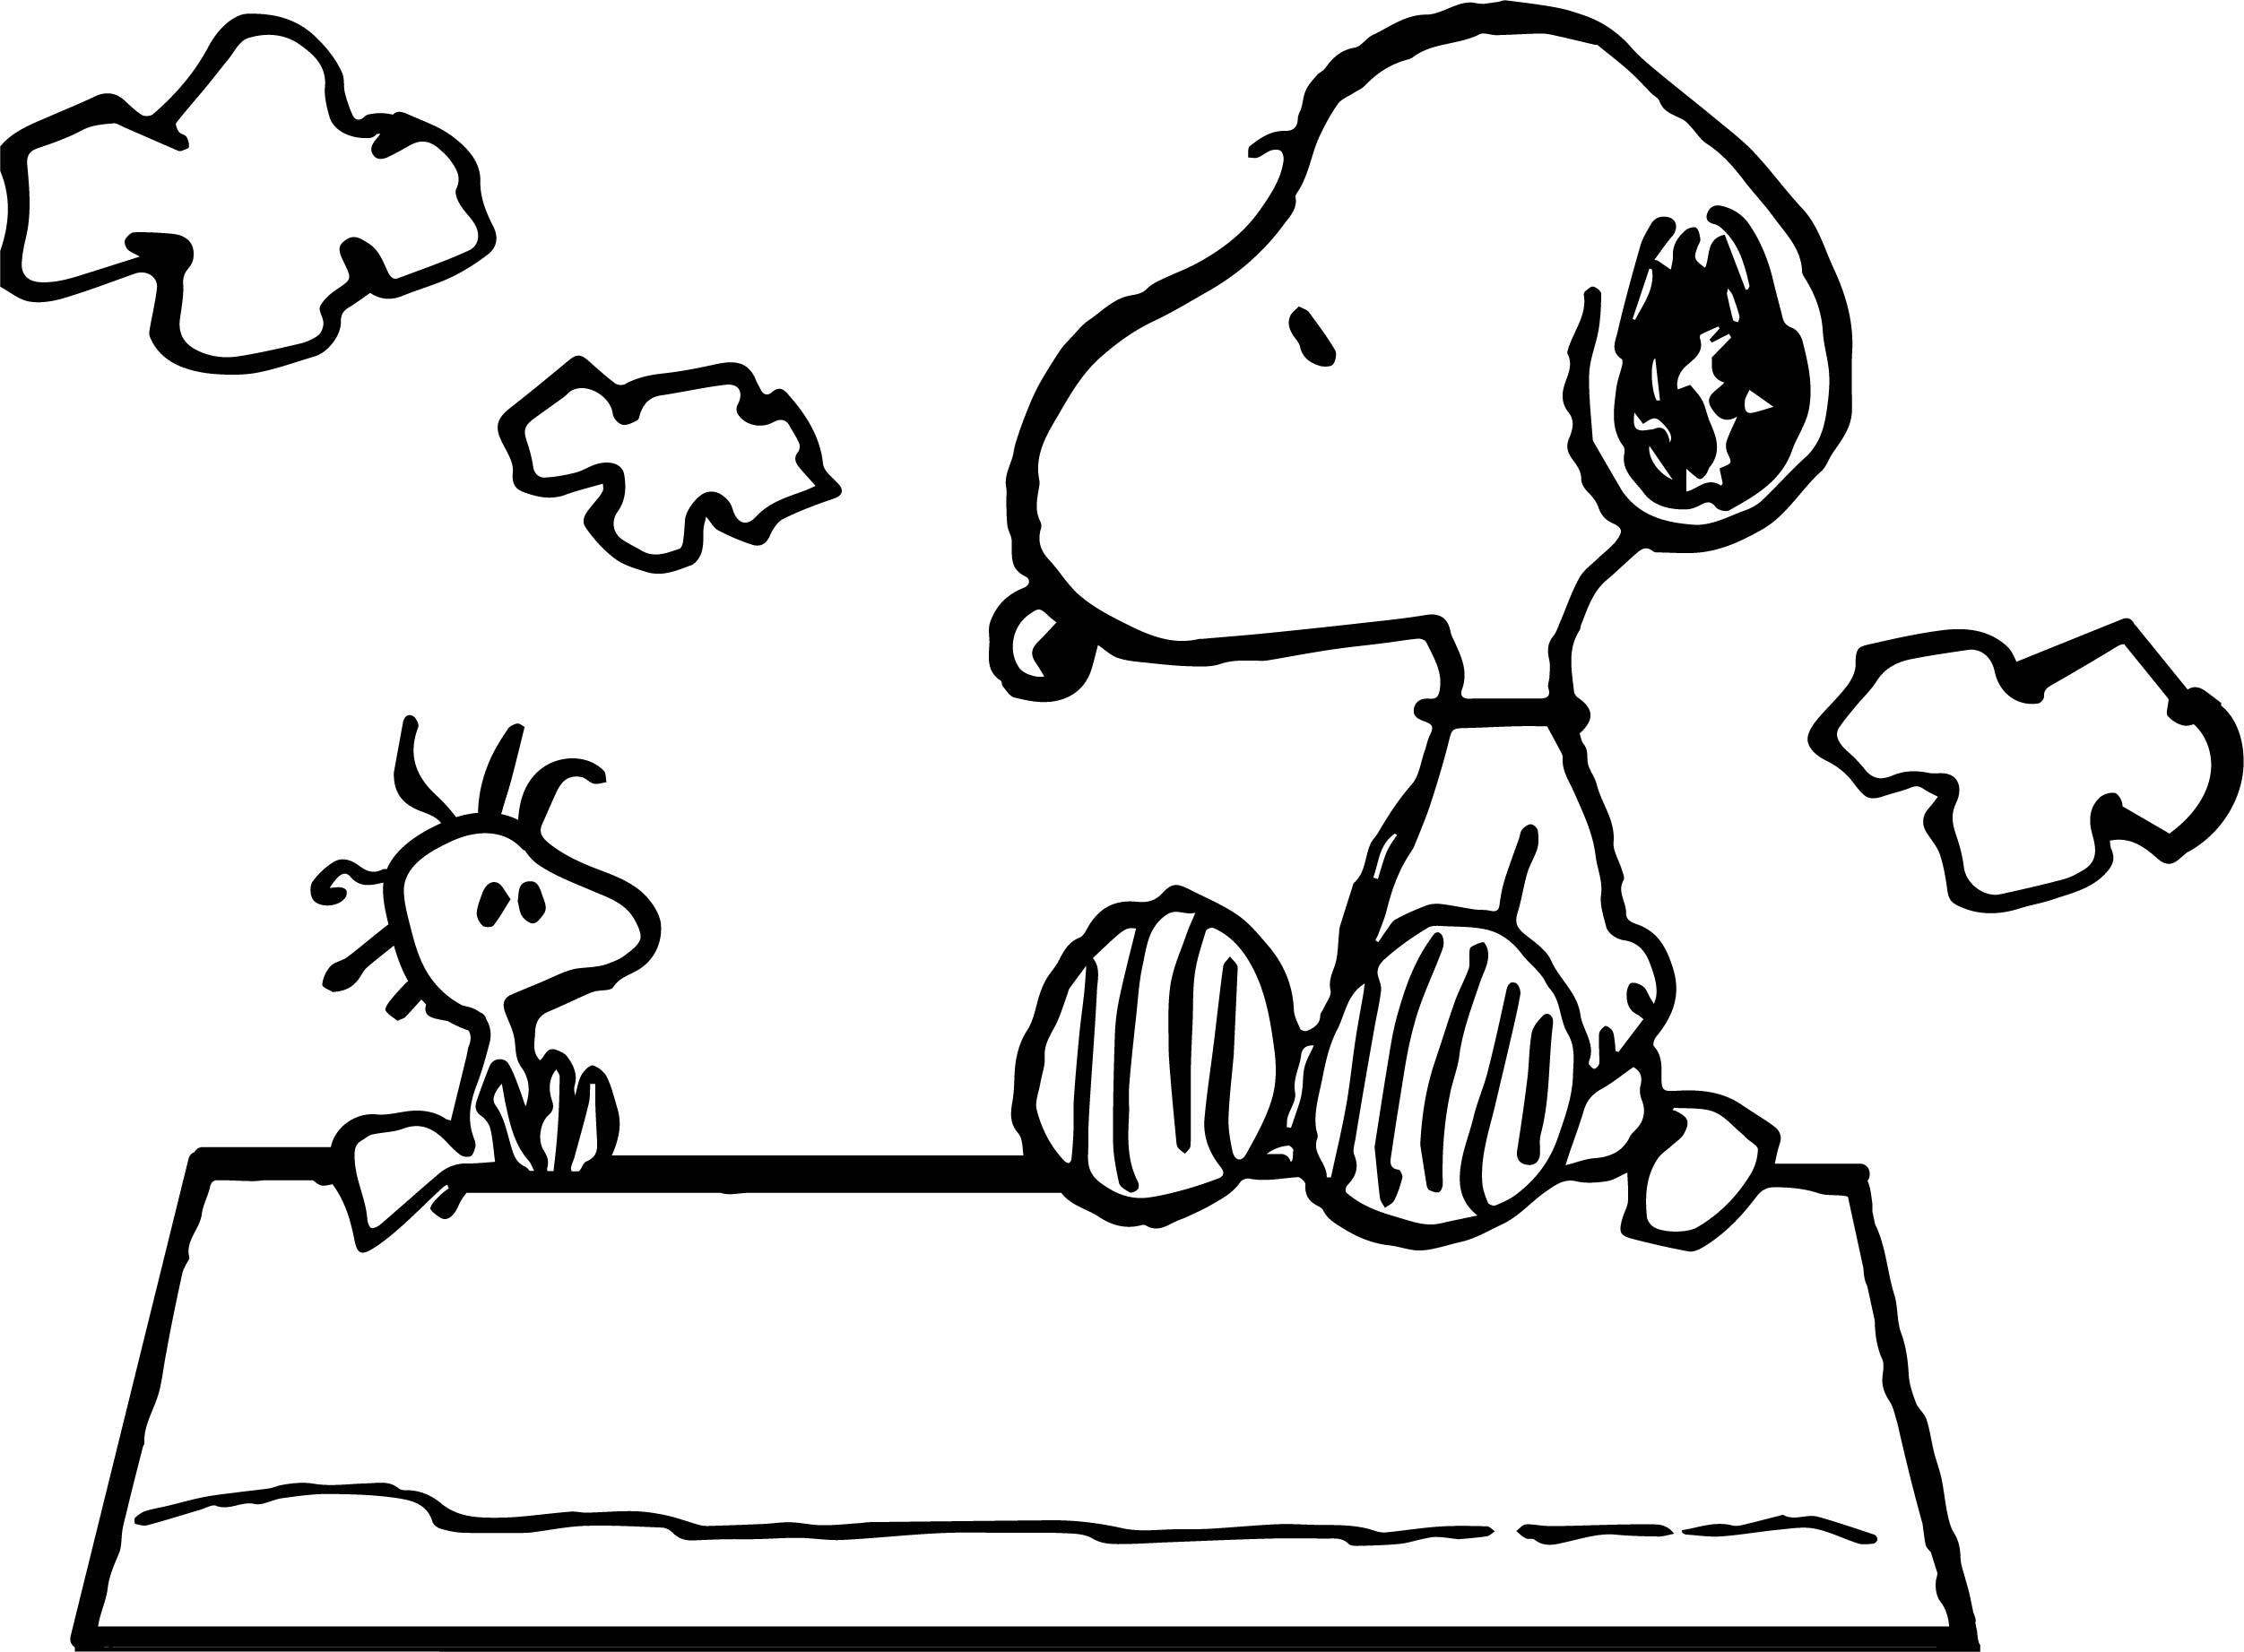 celebrity image peanuts snoopy woodstock coloring page - Celebrity Coloring Book